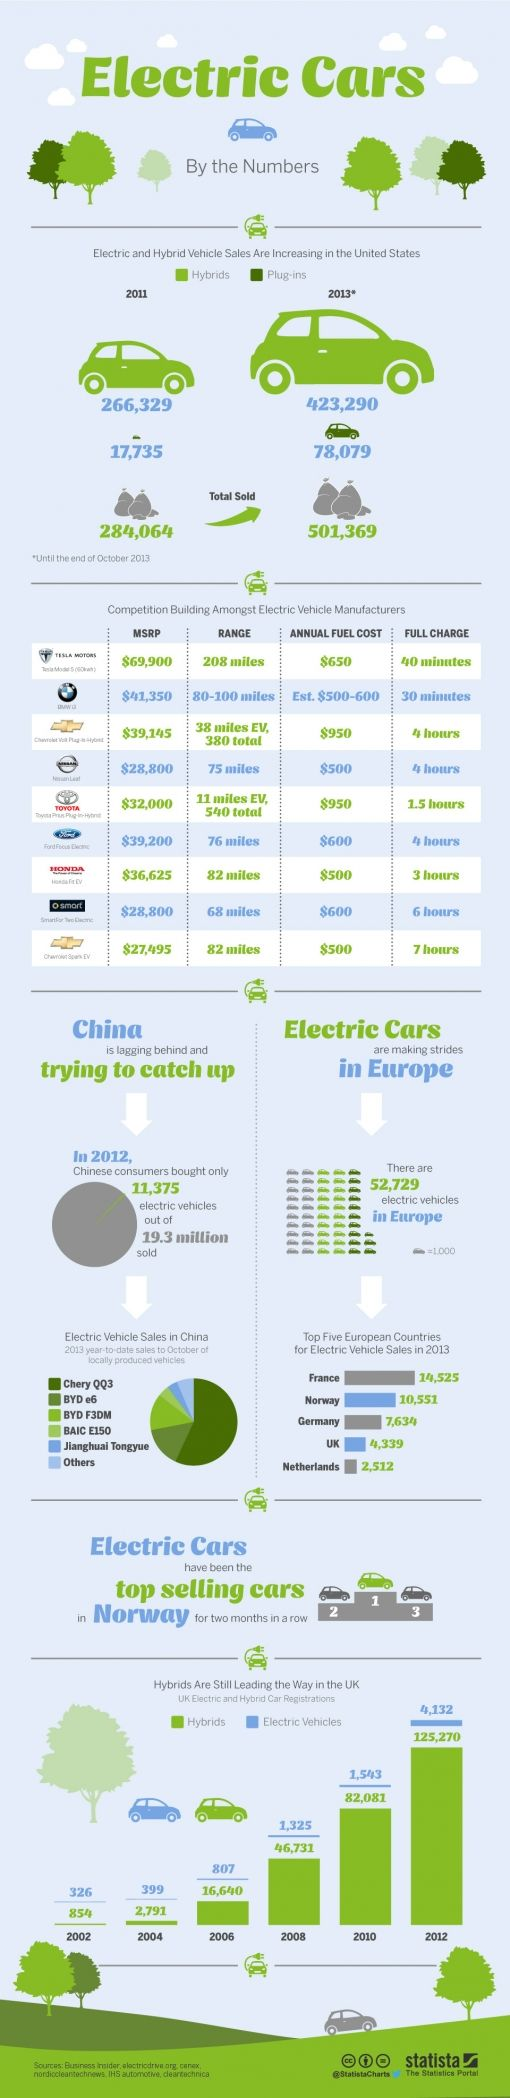 Statista-Infographic_1787_electric-and-hybrid-vehicles-by-the-numbers-